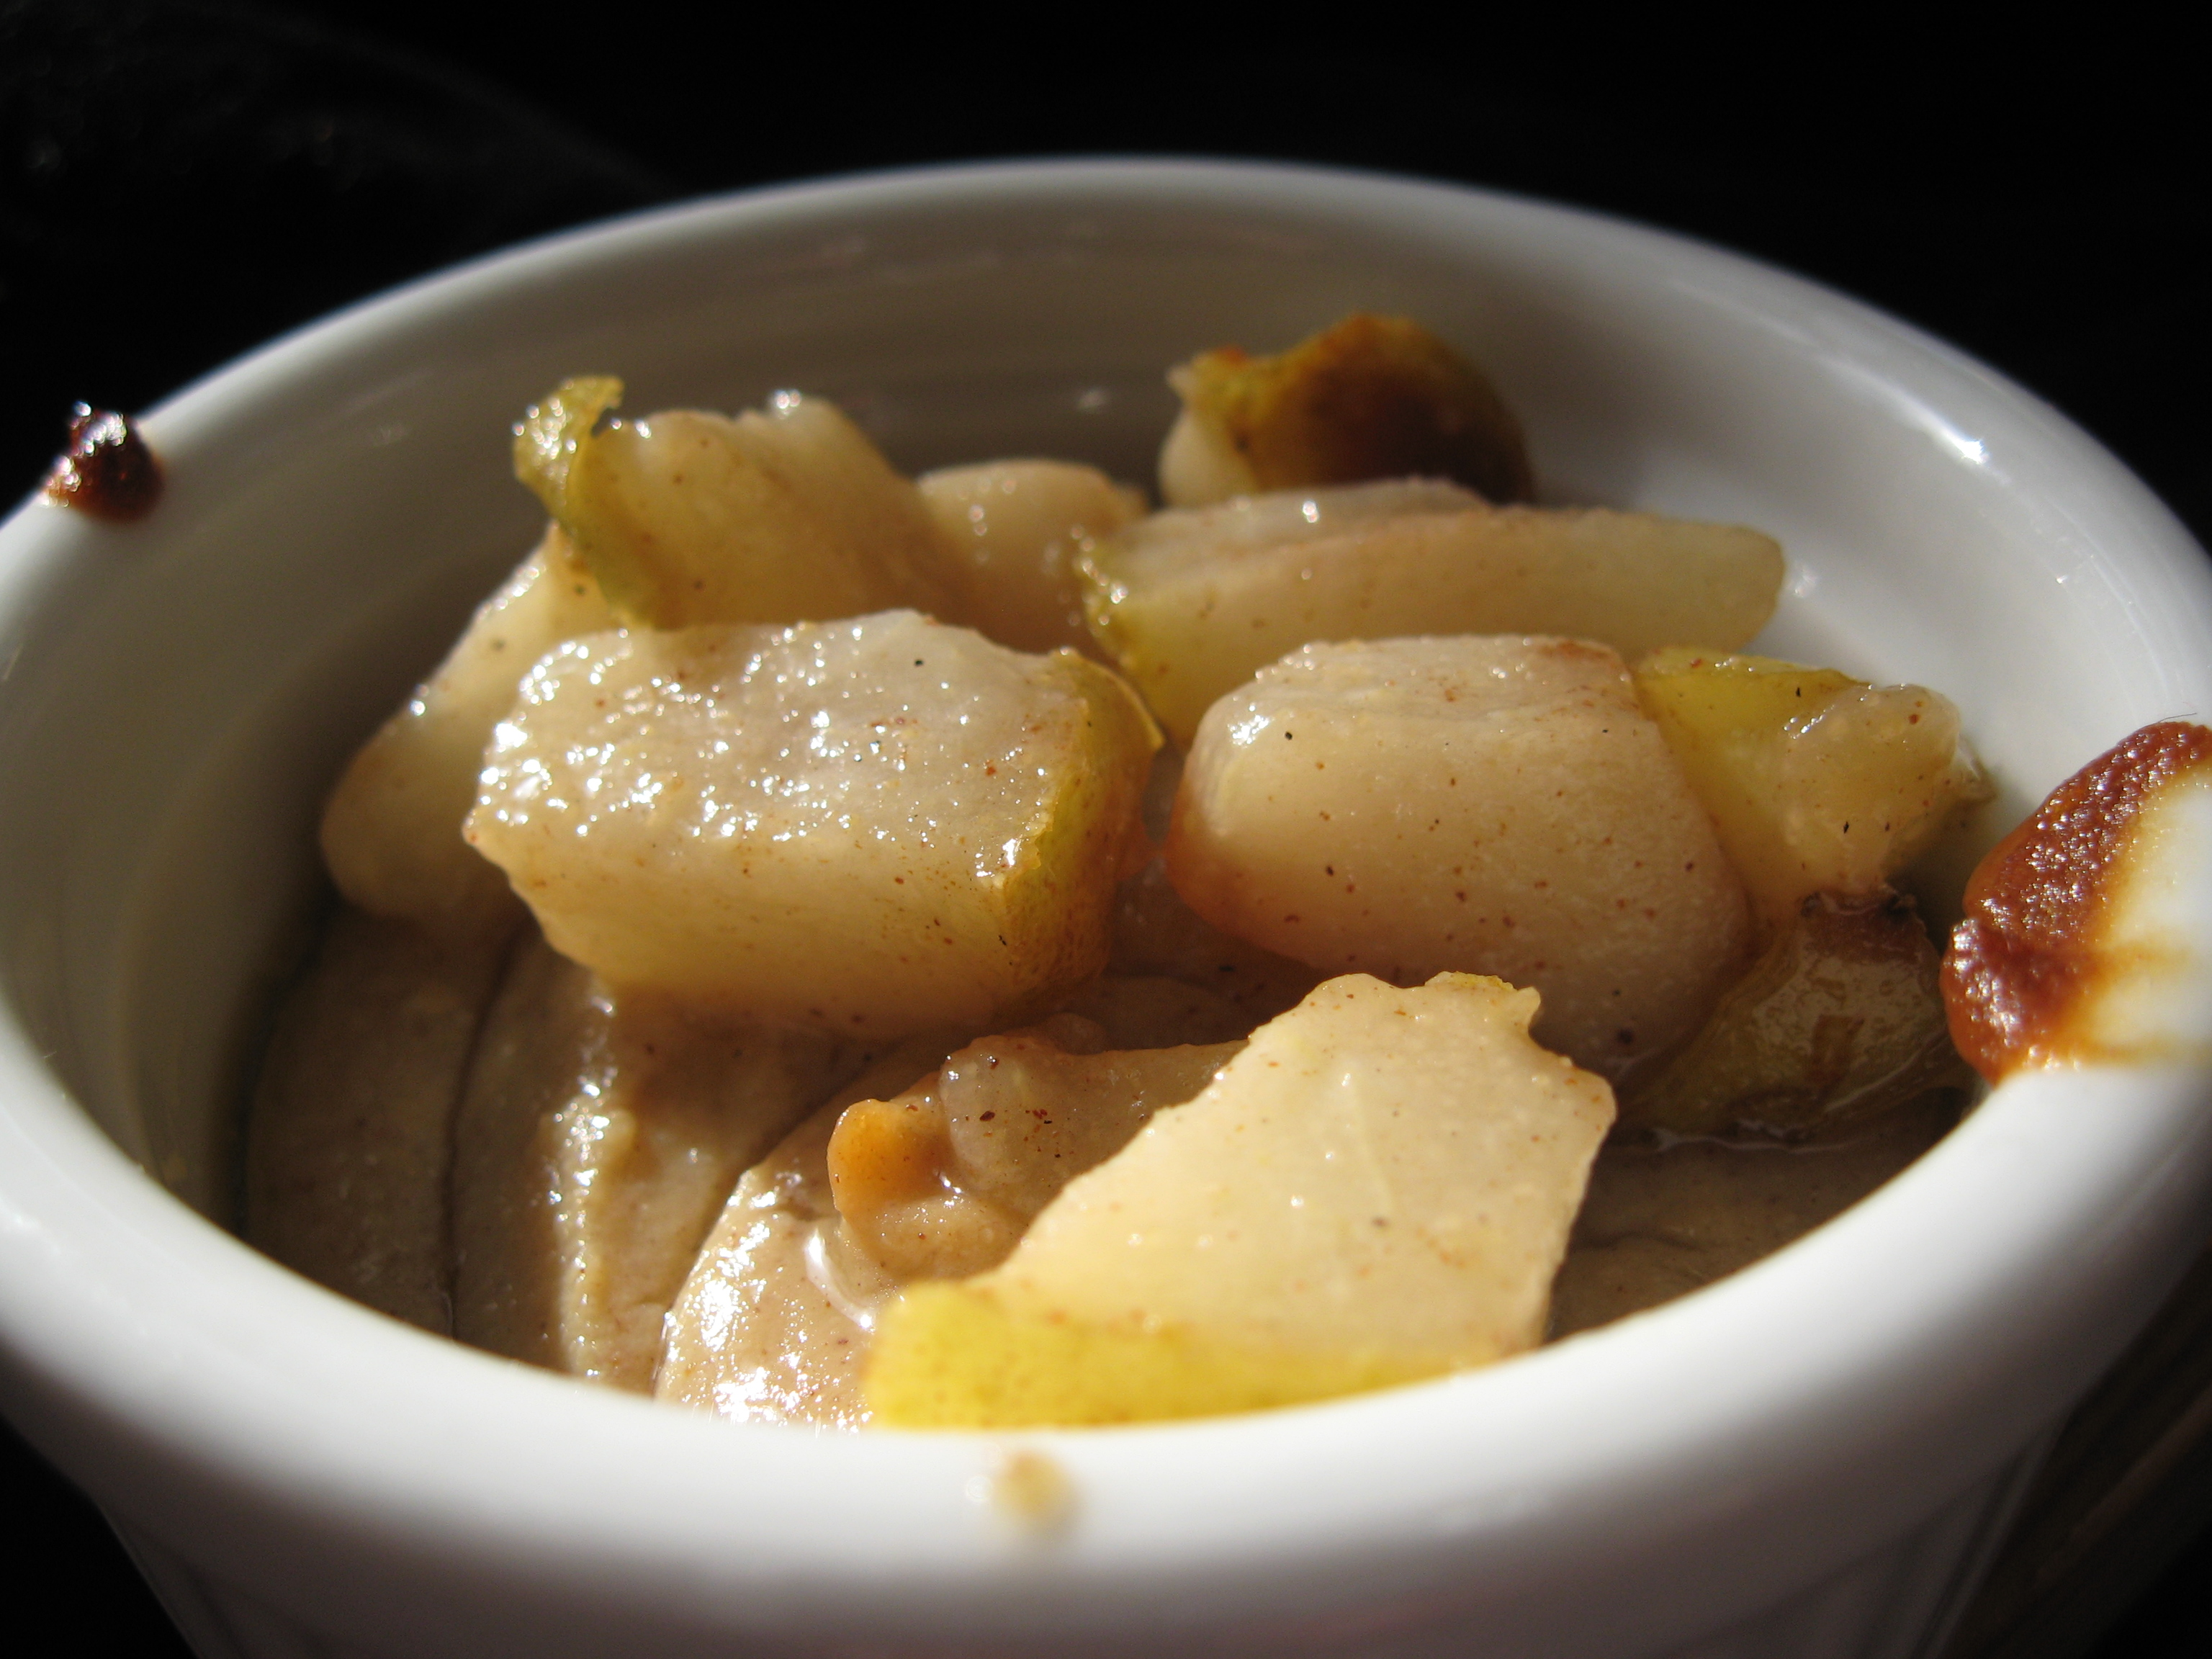 Parsnip (in place of pumpkin) Tofu Custard with Caramelized Pears